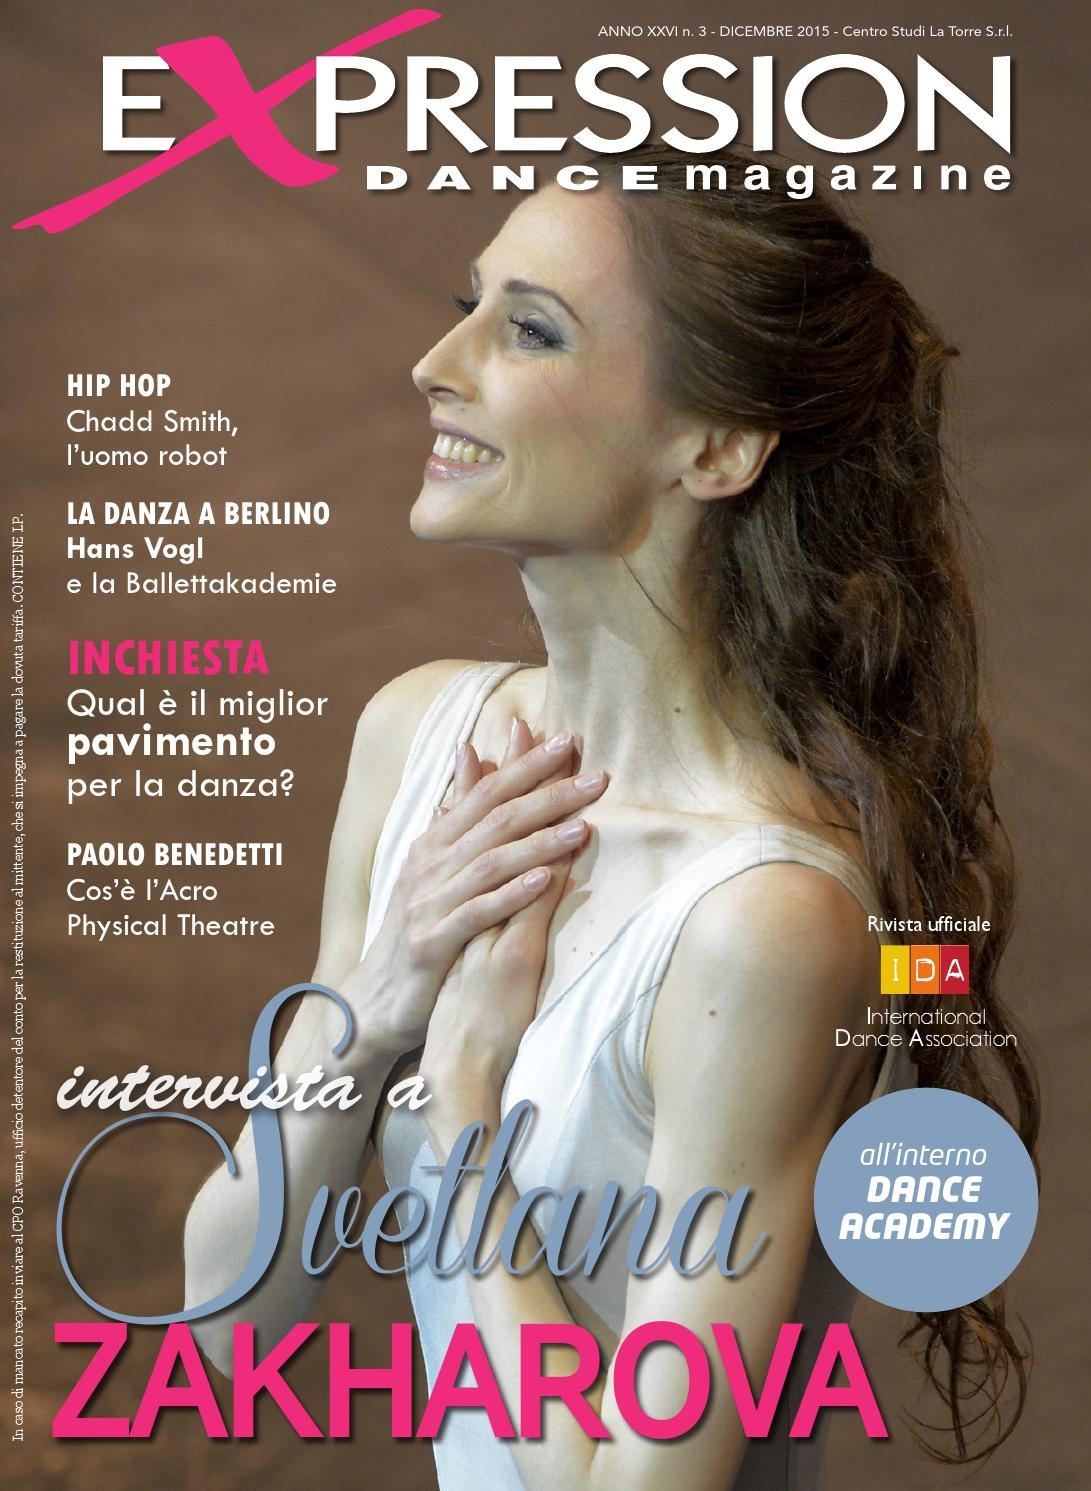 Expression Dance Magazine dicembre 2015 by IDA International